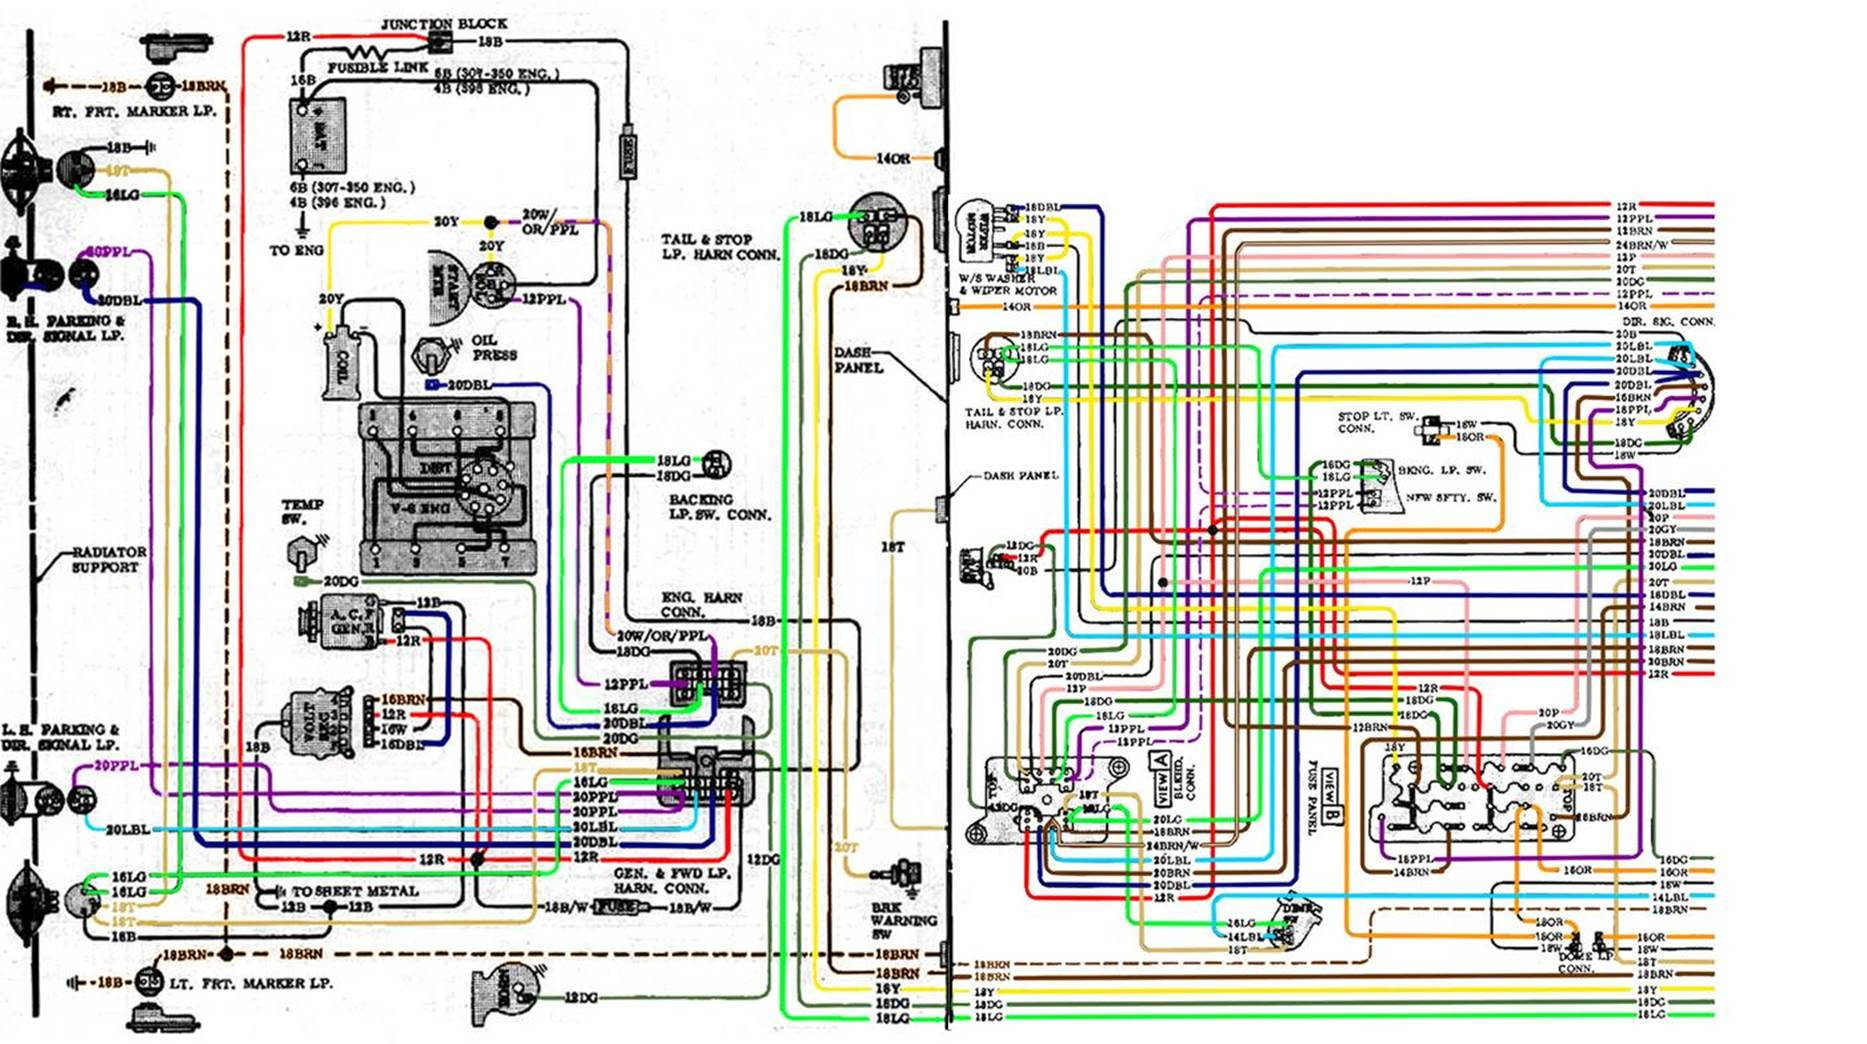 image002 67 72 chevy wiring diagram 1970 chevelle dash wiring diagram at cos-gaming.co